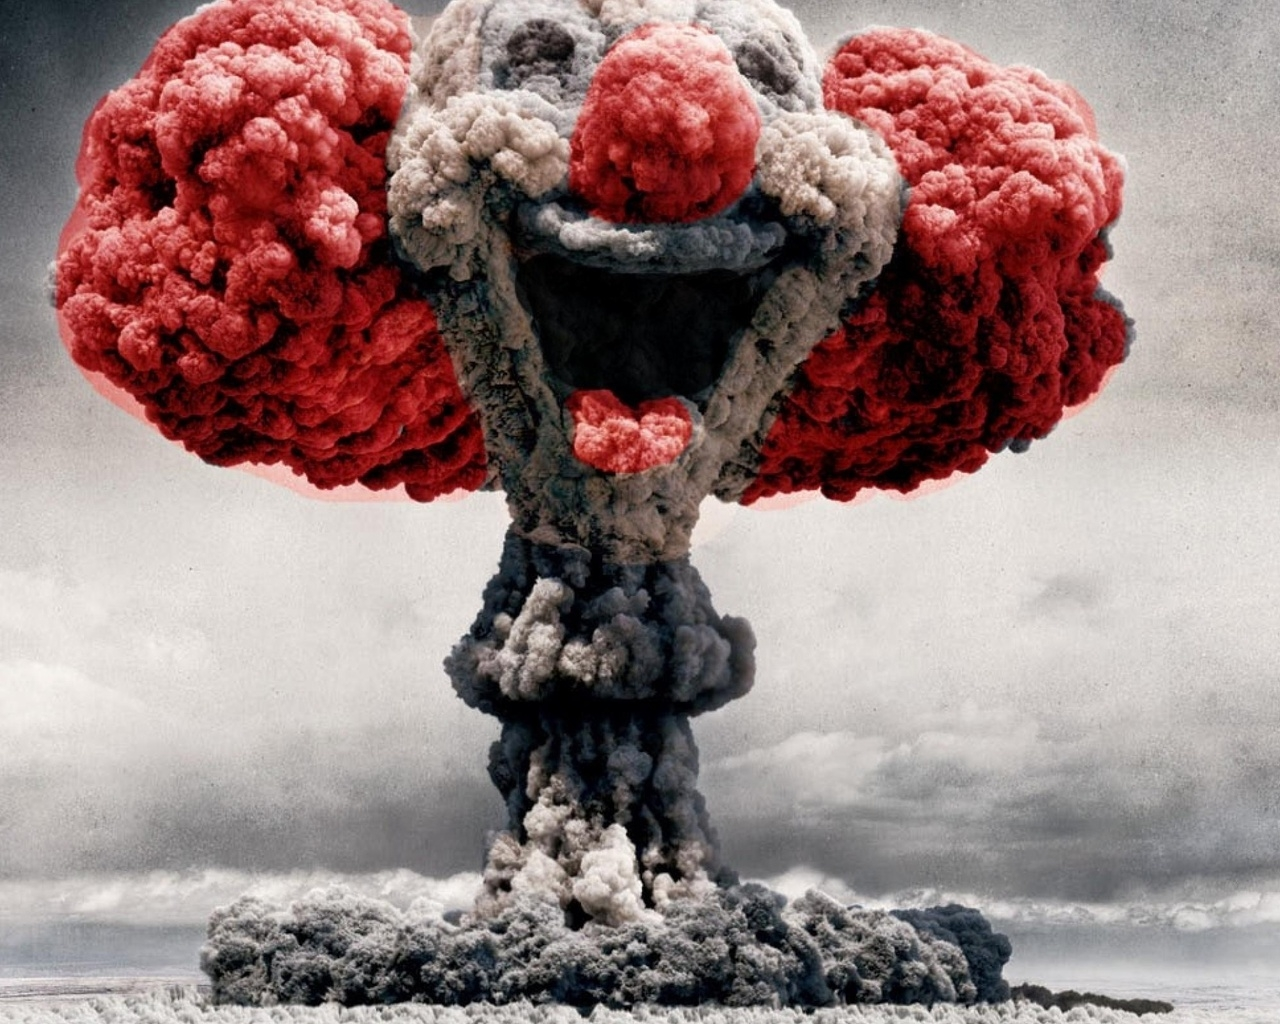 Nuclear Clown for 1280 x 1024 resolution